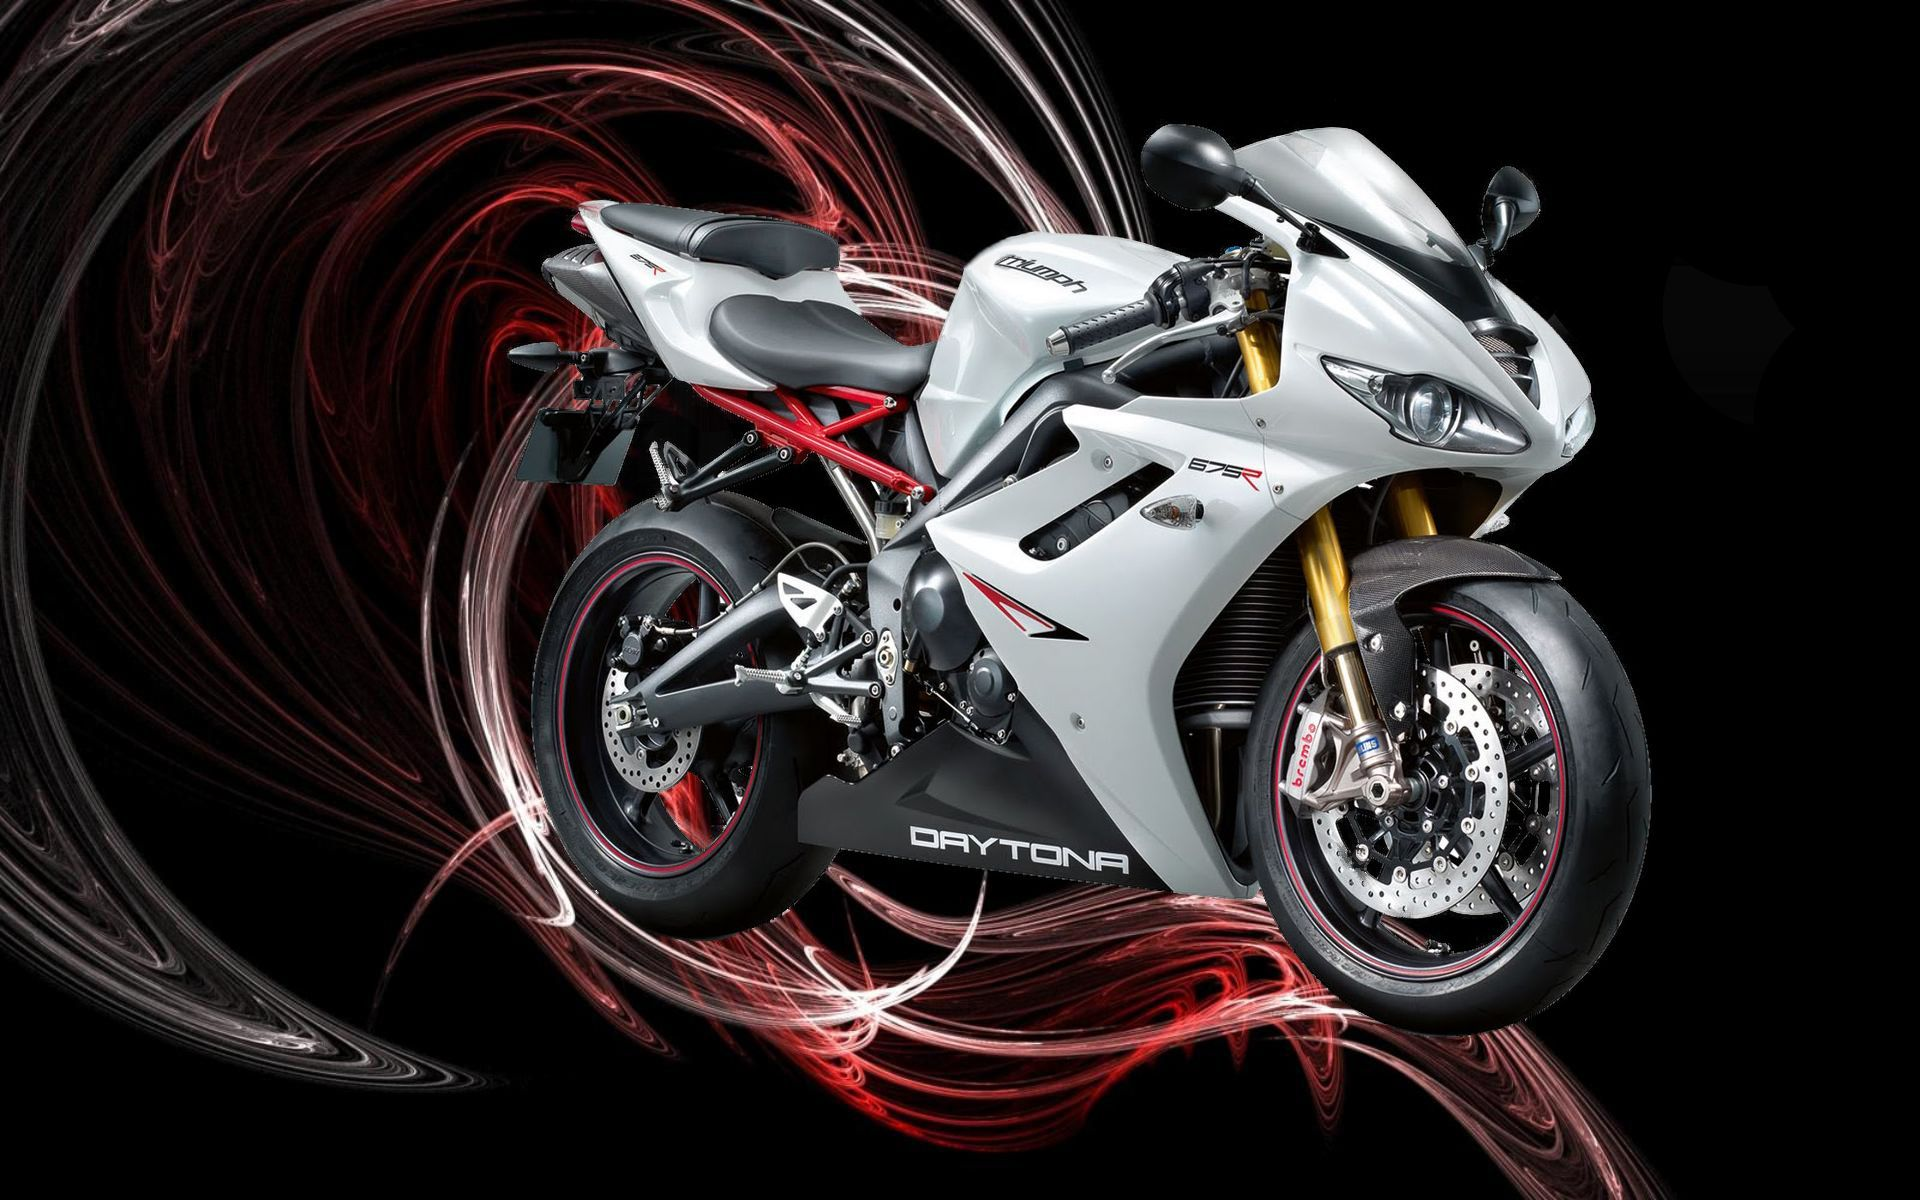 Motor background motor wallpapers in hd for free desktop download motor background motor wallpapers in hd for free desktop download 19201200 wallpaper motor voltagebd Choice Image